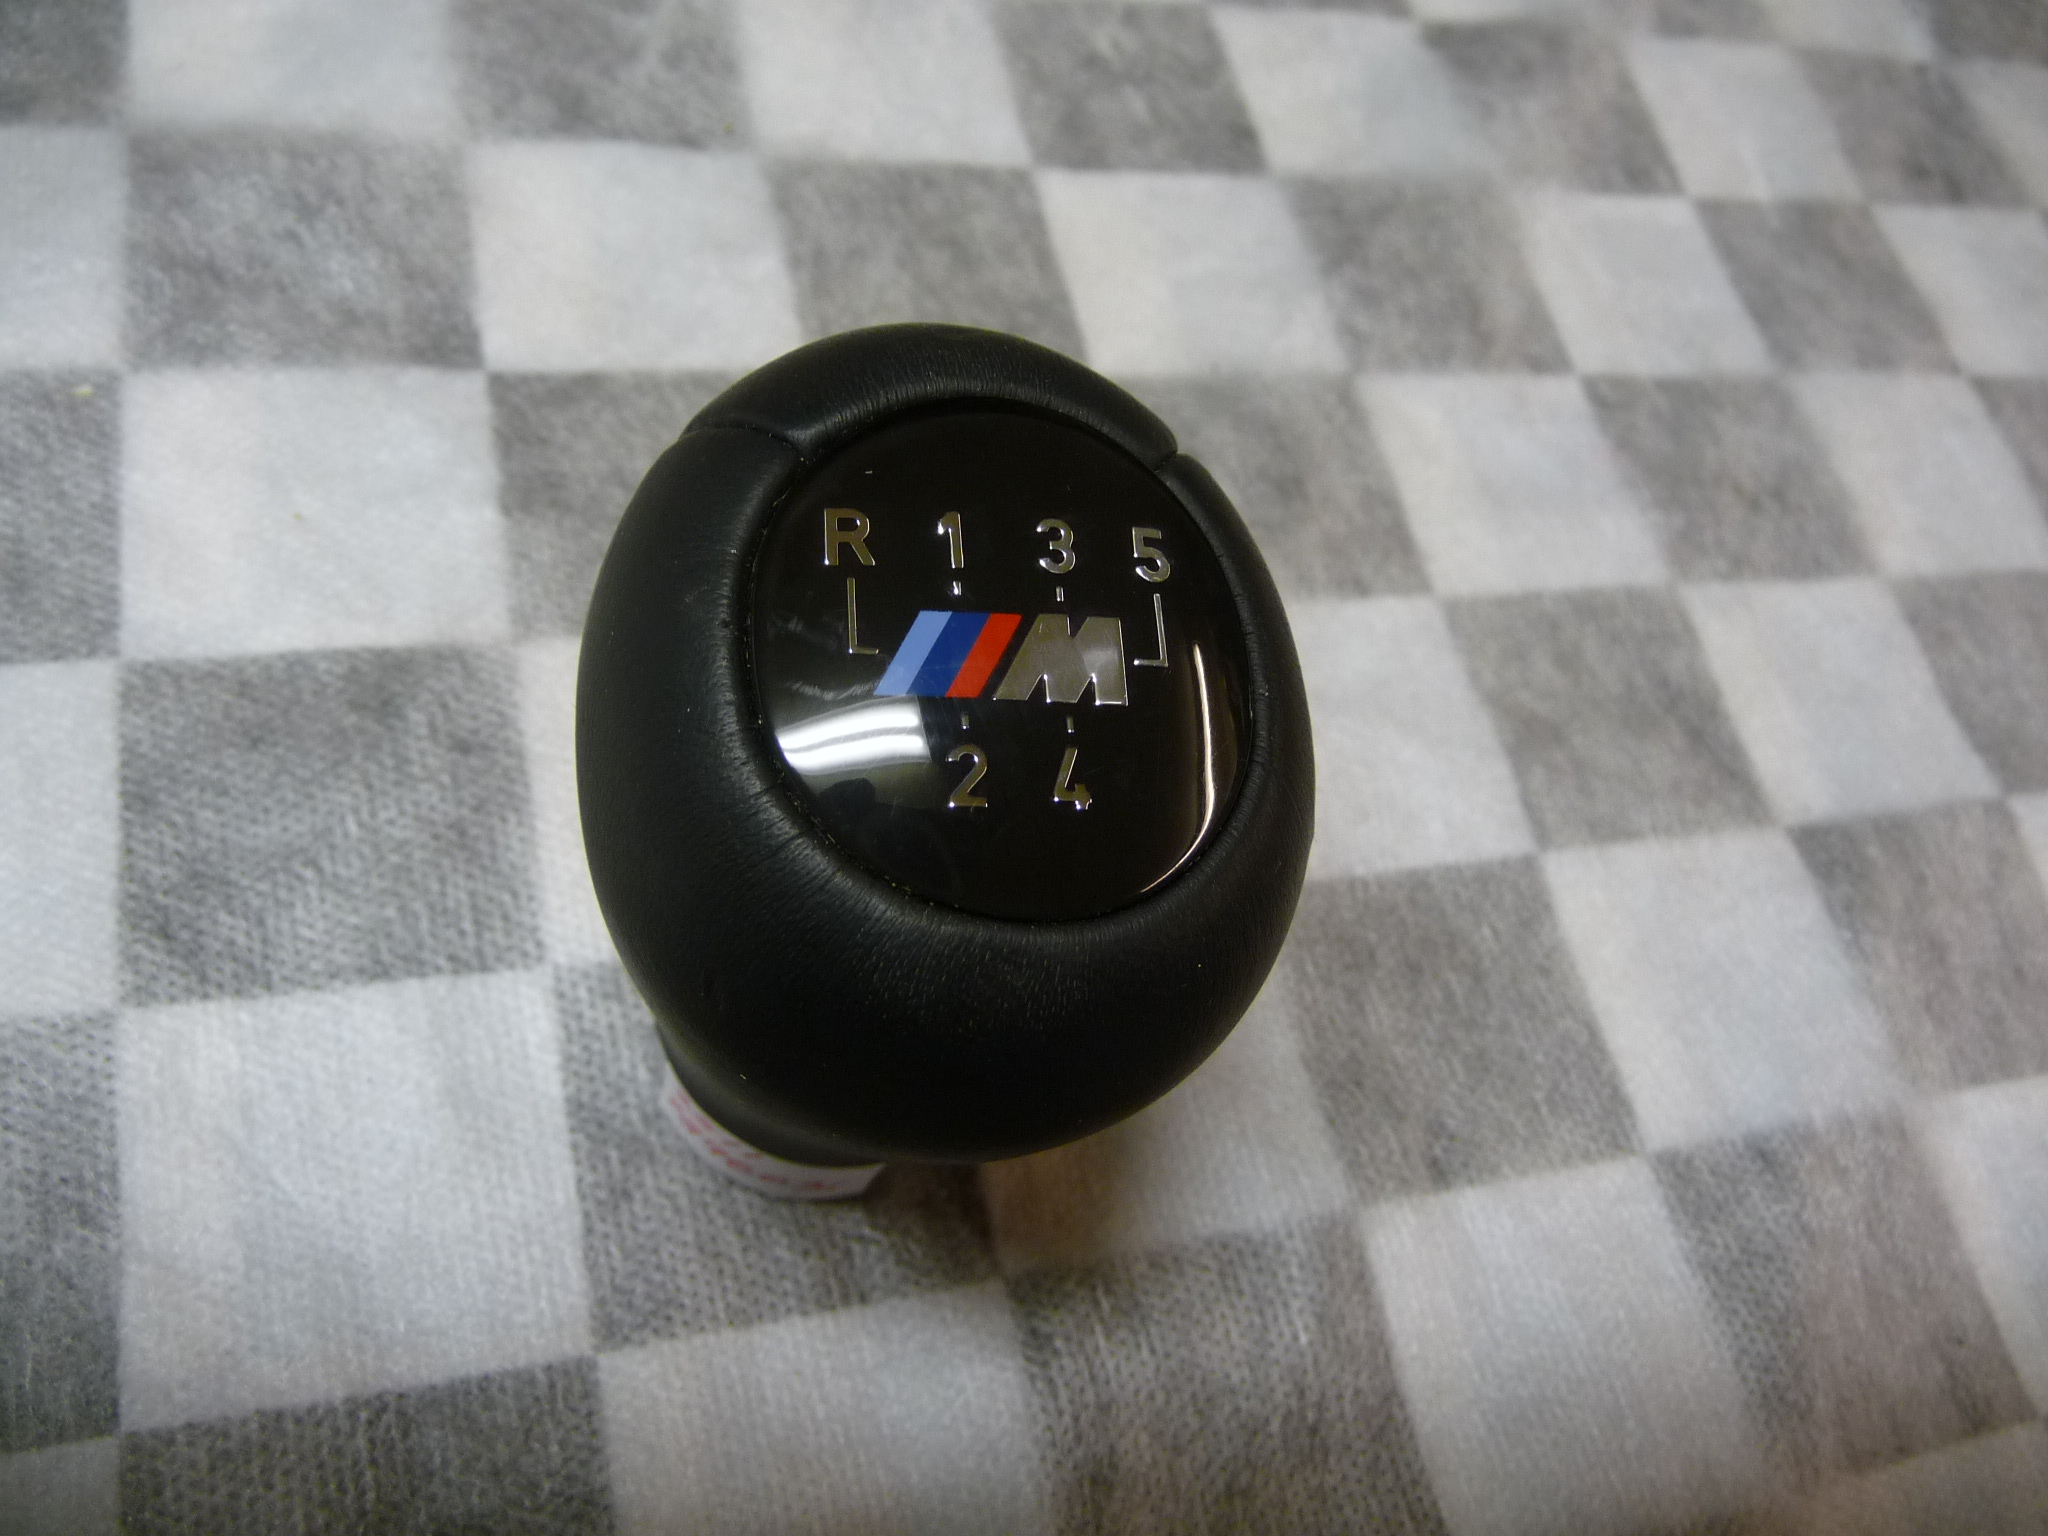 BMW 3 Series E46 5-speed Gear Shift Knob Leather 25117896031 OEM OE